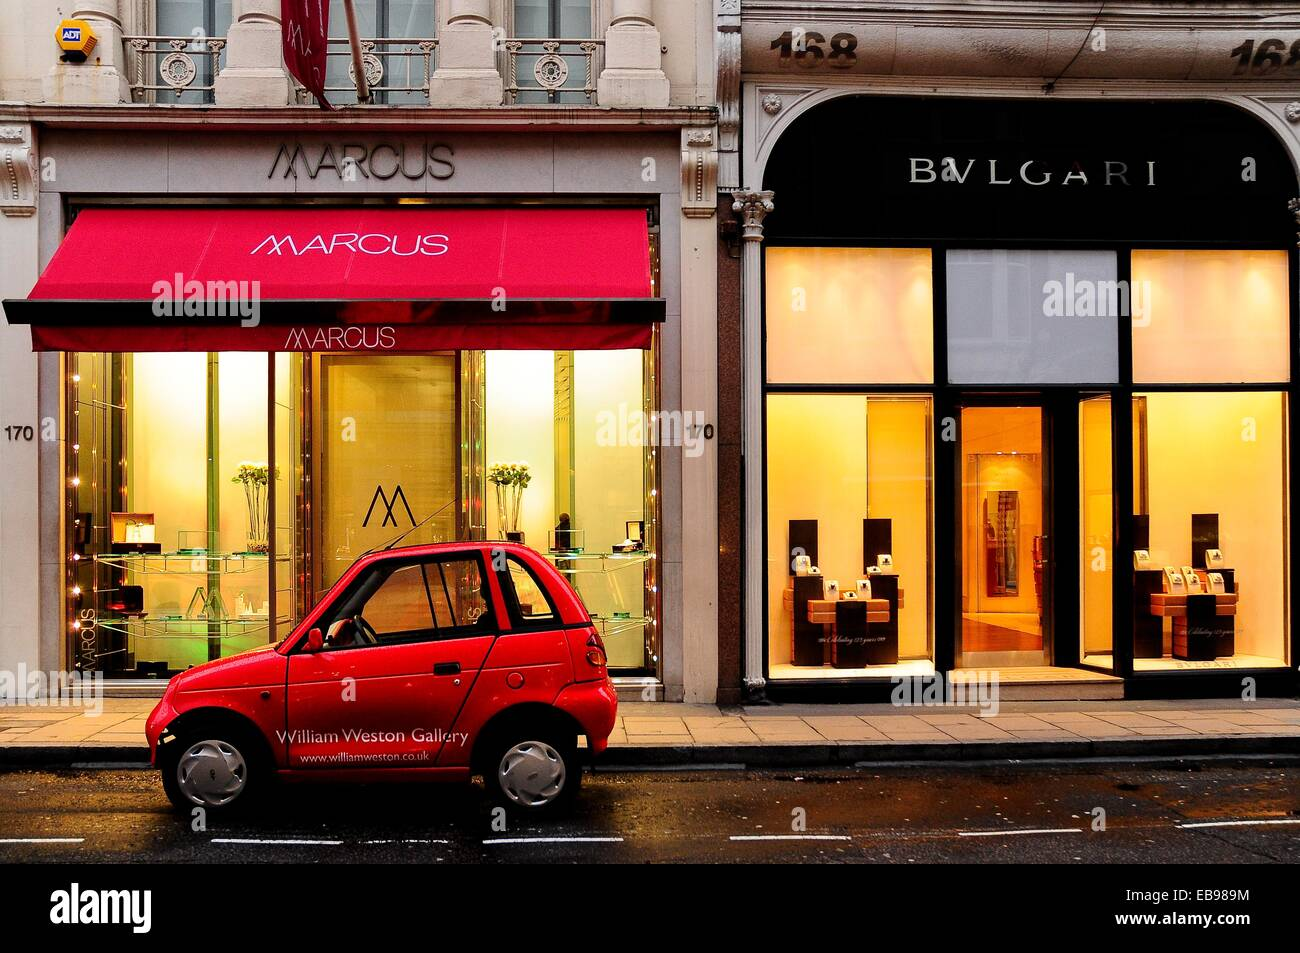 Boutiques in Mayfair, London, England, UK, Europe. - Stock Image